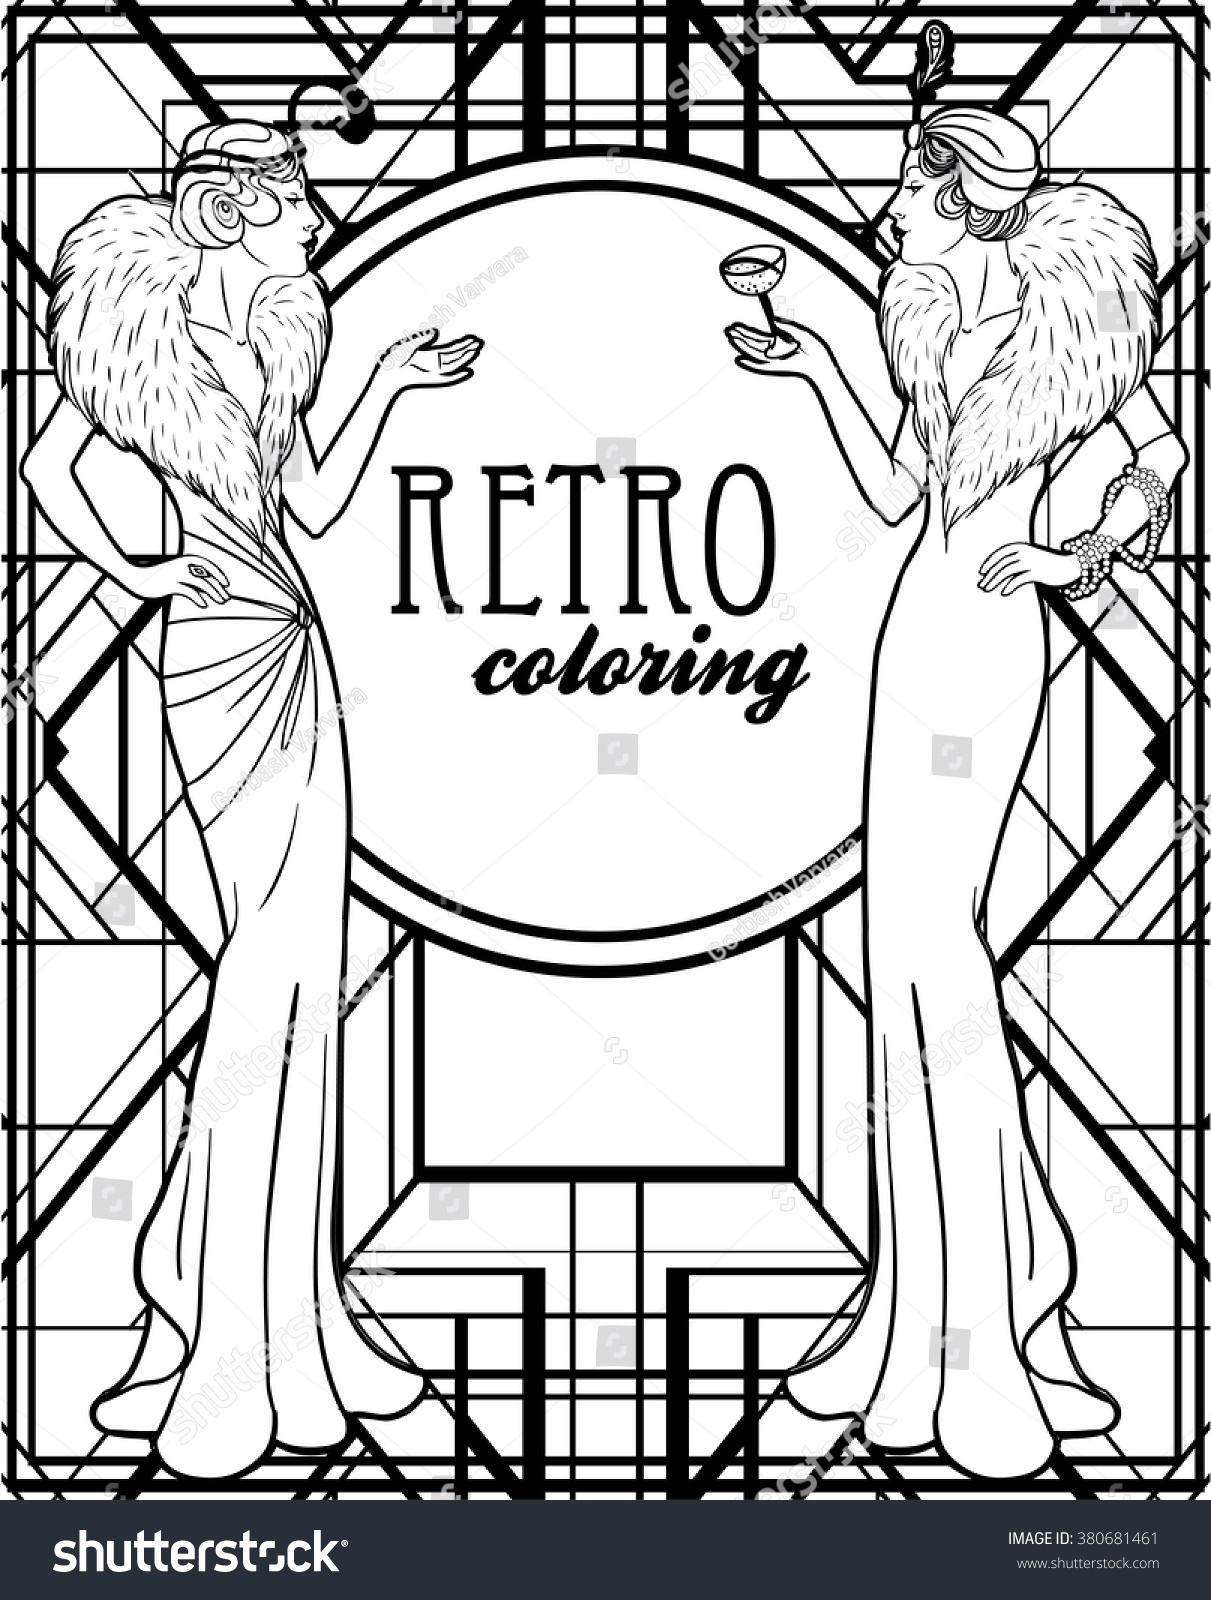 Coloring book for girl - Retro Coloring Book For Kids And Adults Retro Women Of Twenties Vector Illustration